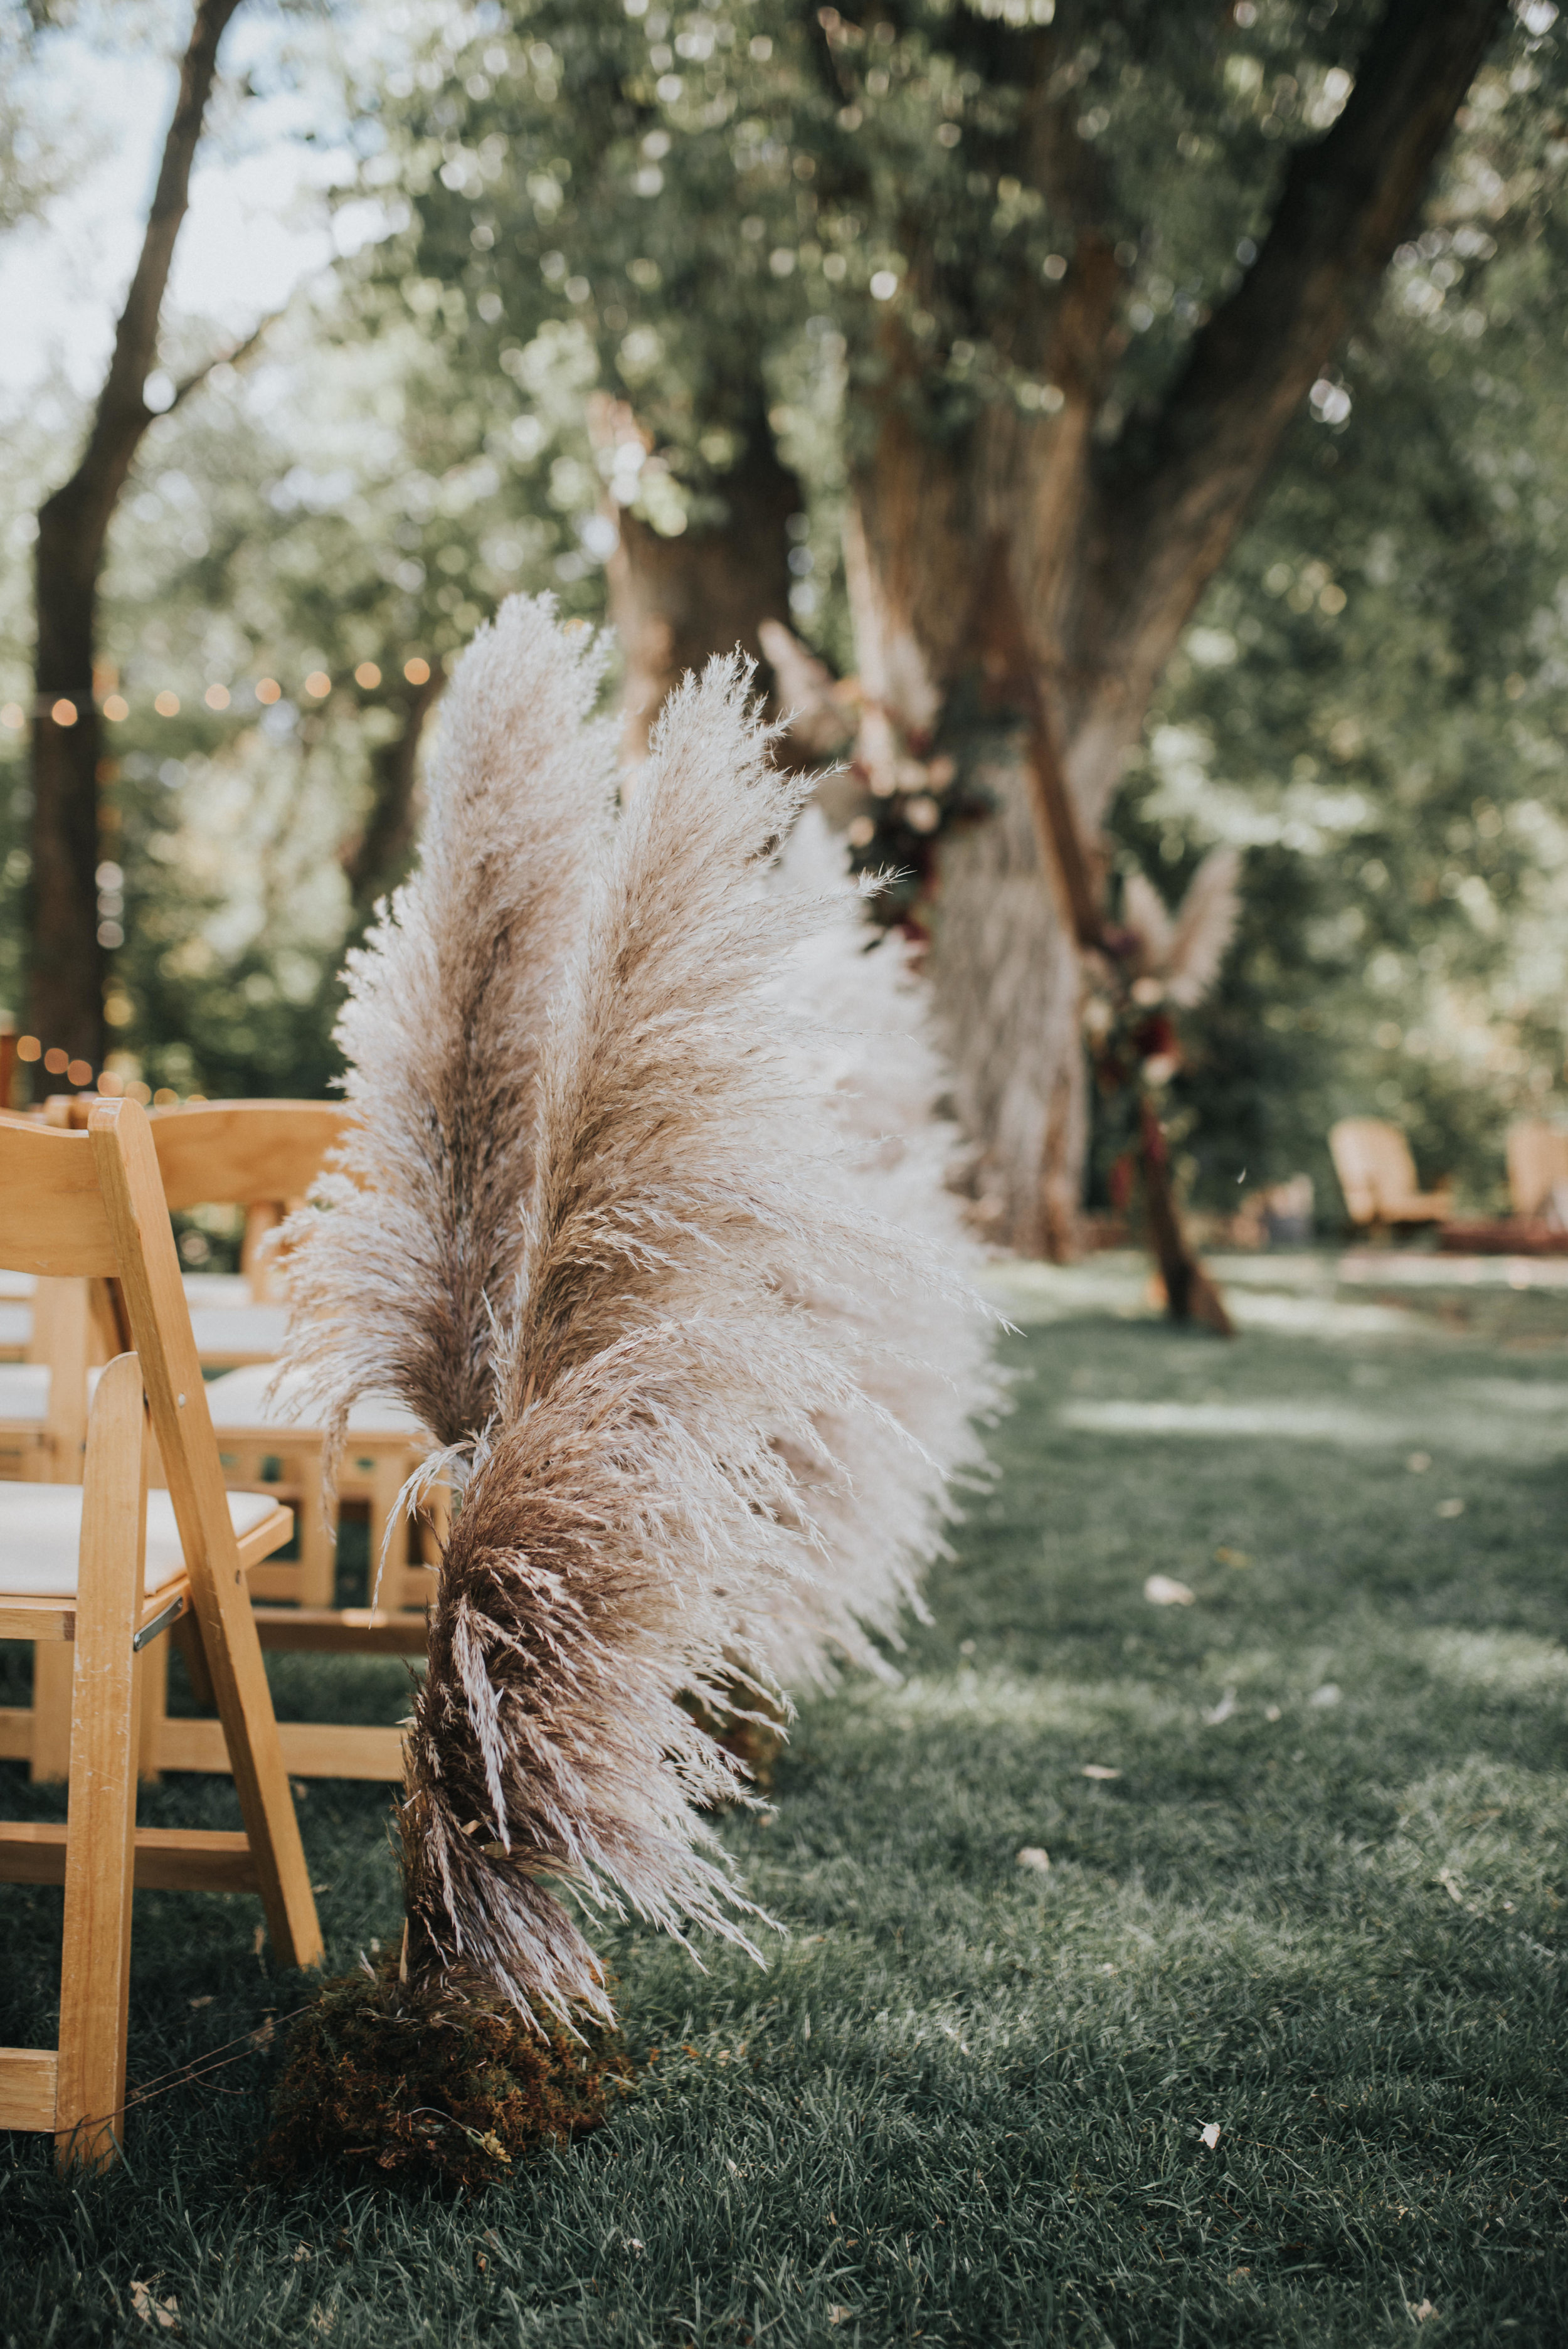 Flowers by Lace and Lilies, boutonniere, wedding flowers, jewel tones, pampas grass, hops, texture, colorado wedding, a-frame arch, arch flowers, altar flowers, aisle flowers, aisle pampas grass, ceremony flowers, moody toned wedding, pampas grass